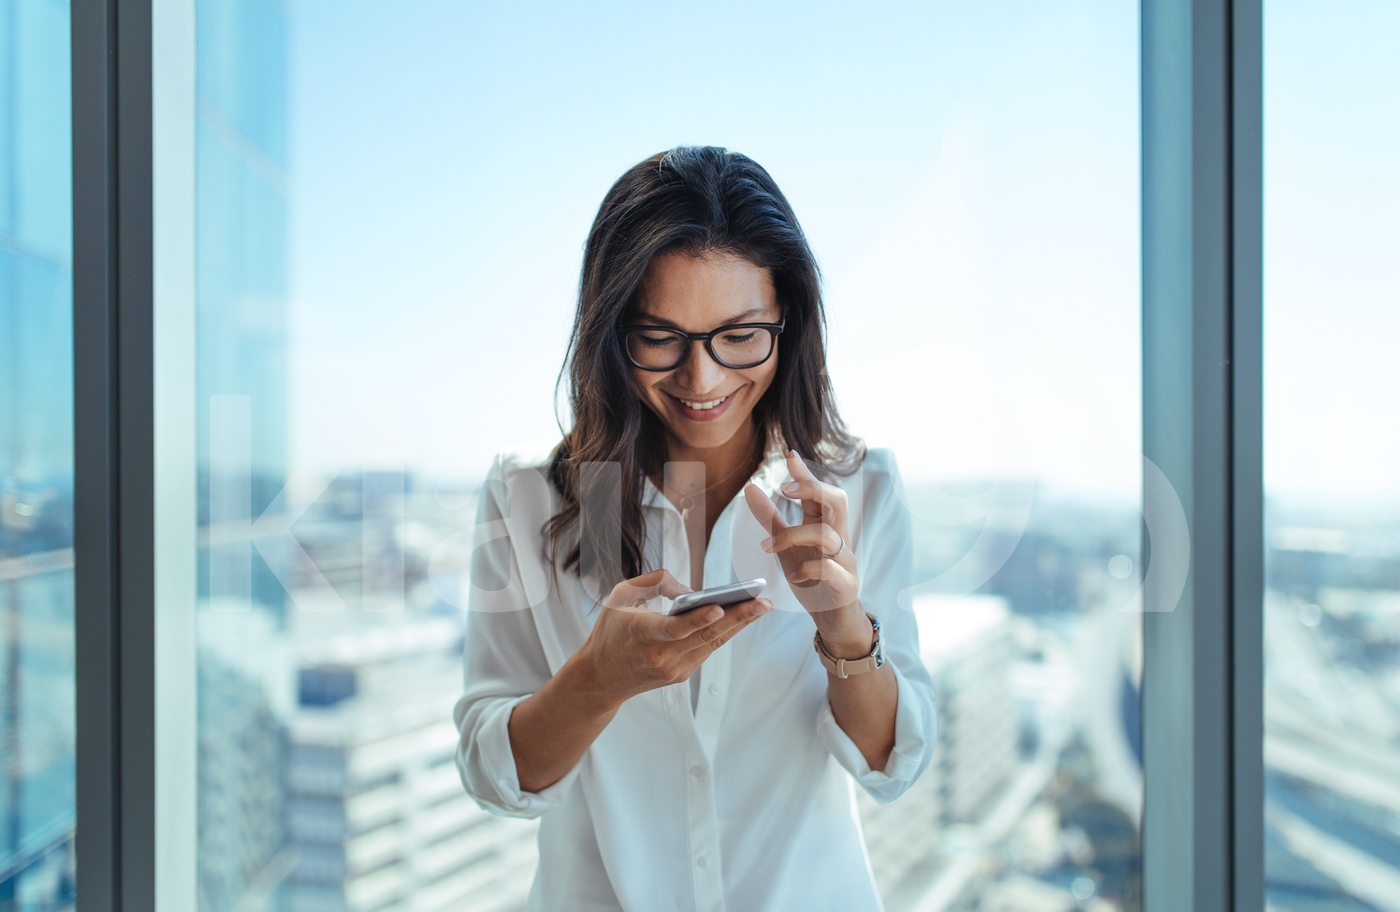 Happy businesswoman using her mobile phone at office.